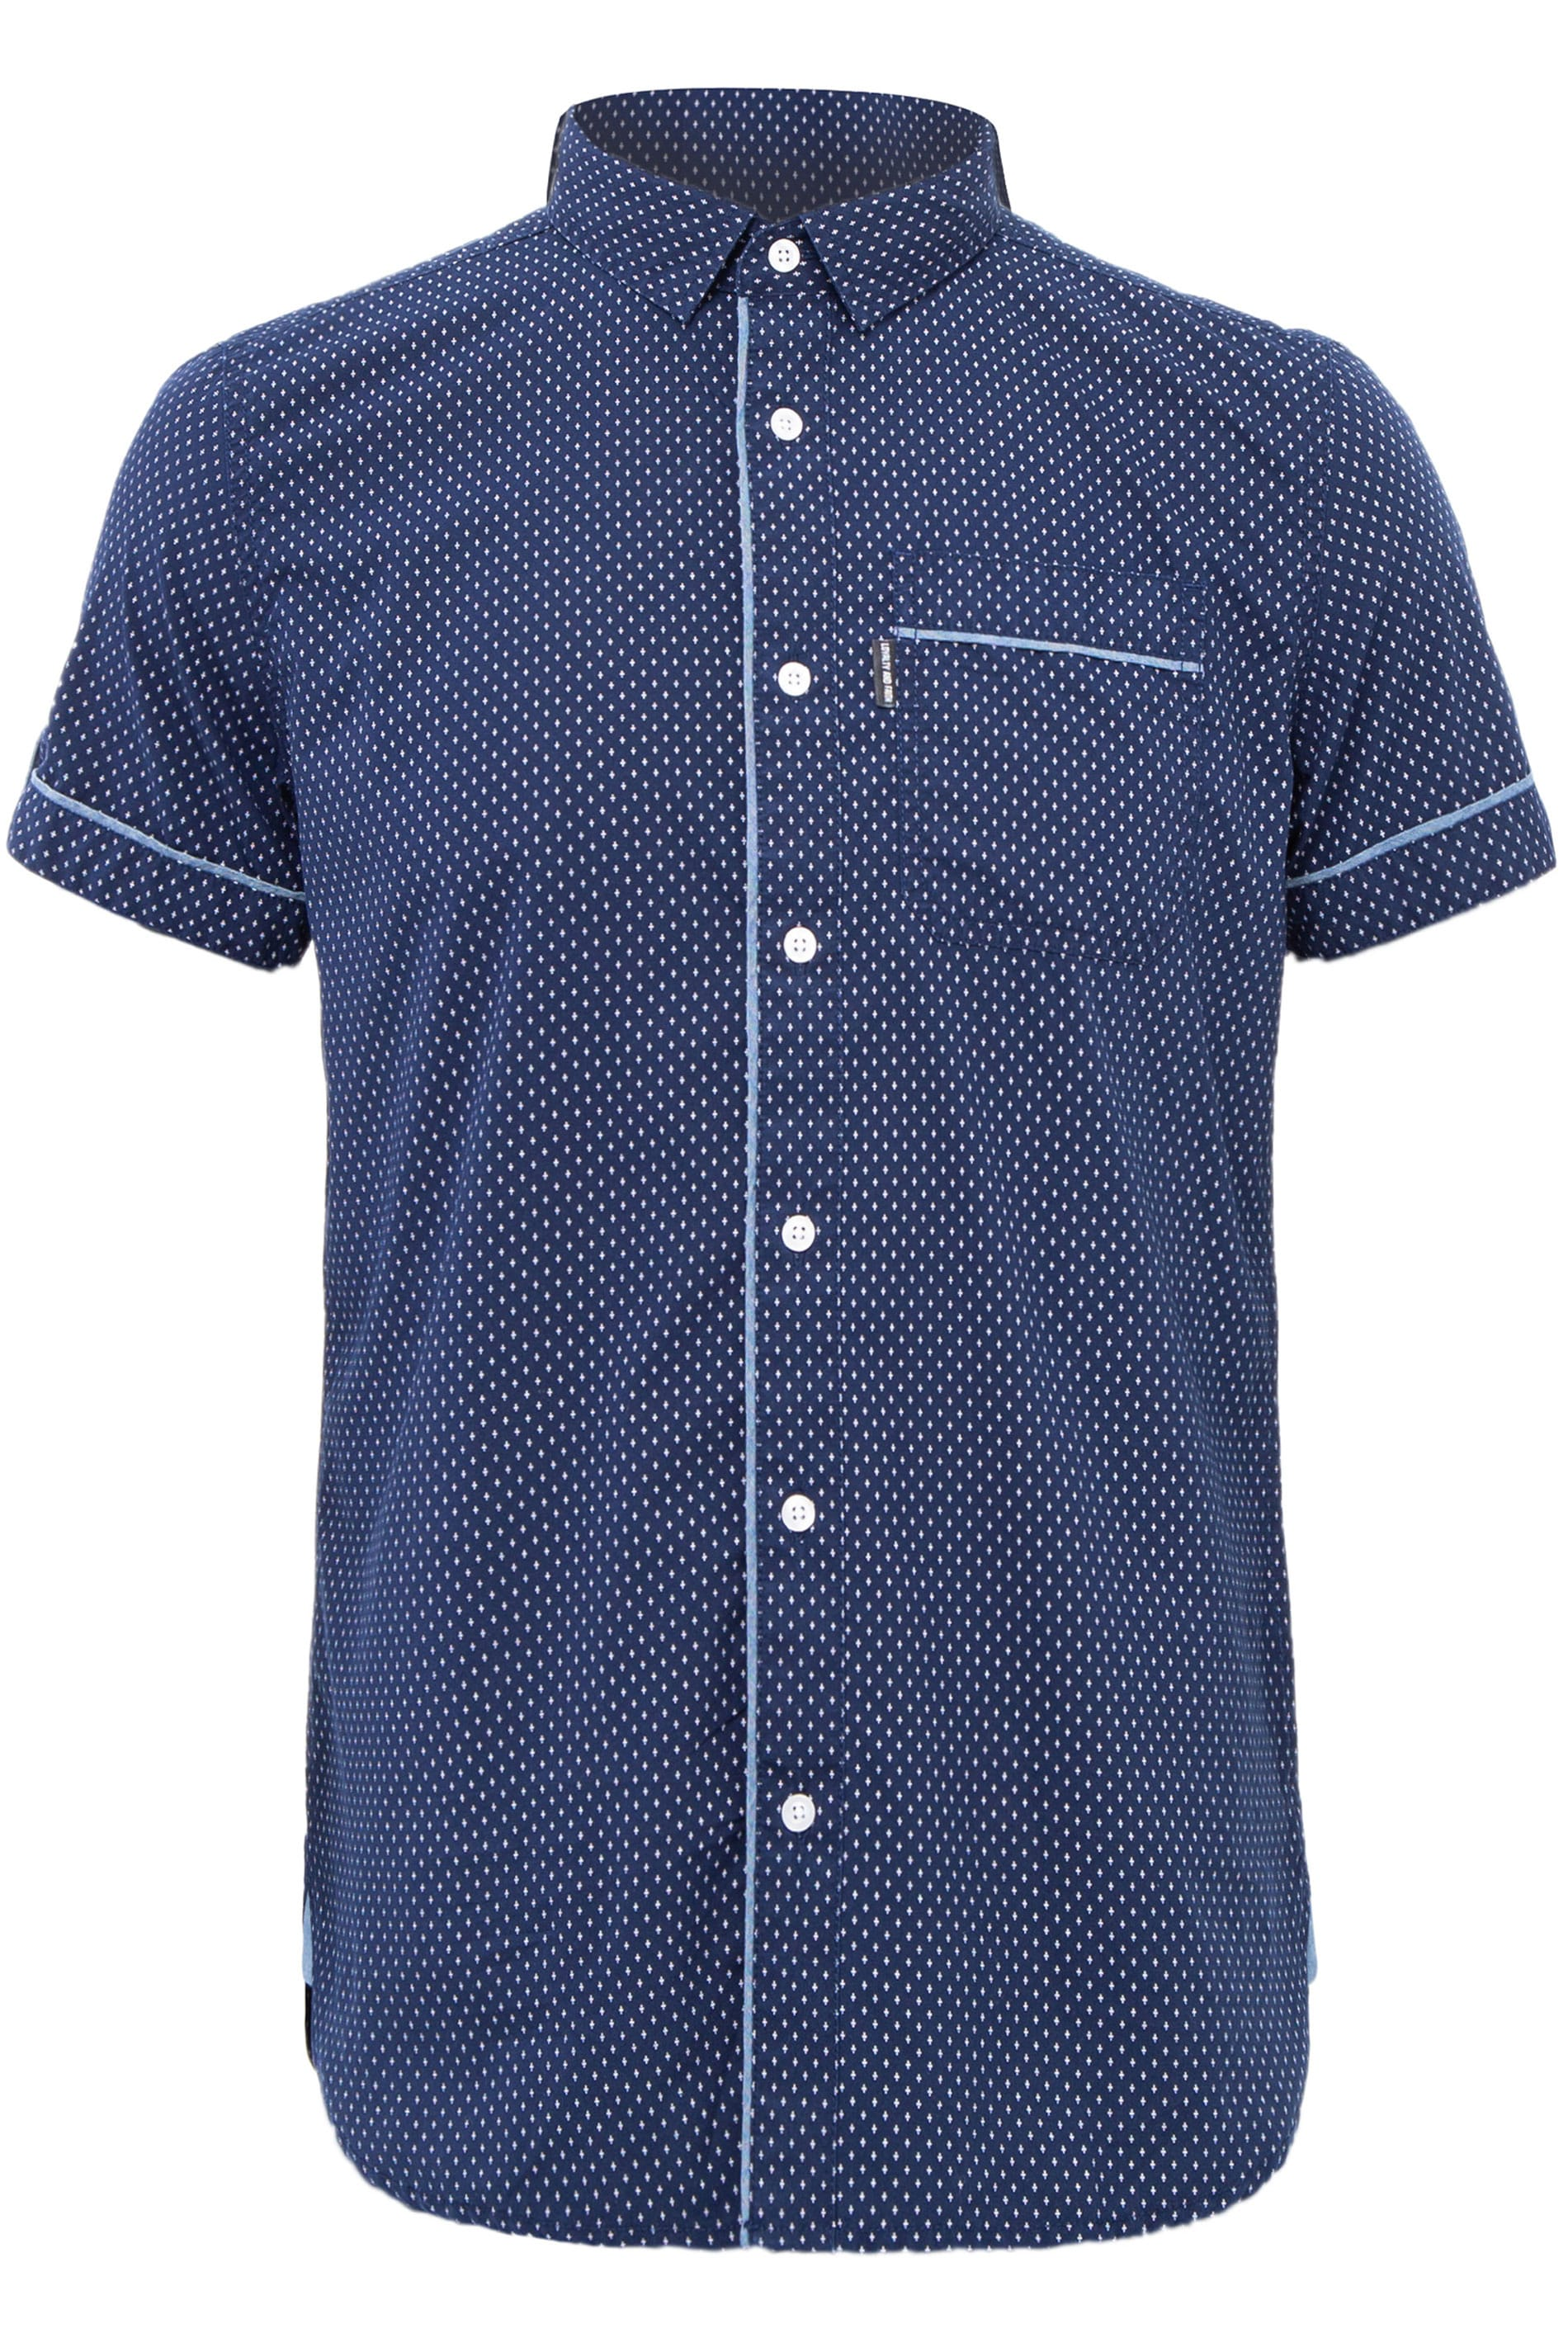 LOYALTY & FAITH Navy Printed Shirt